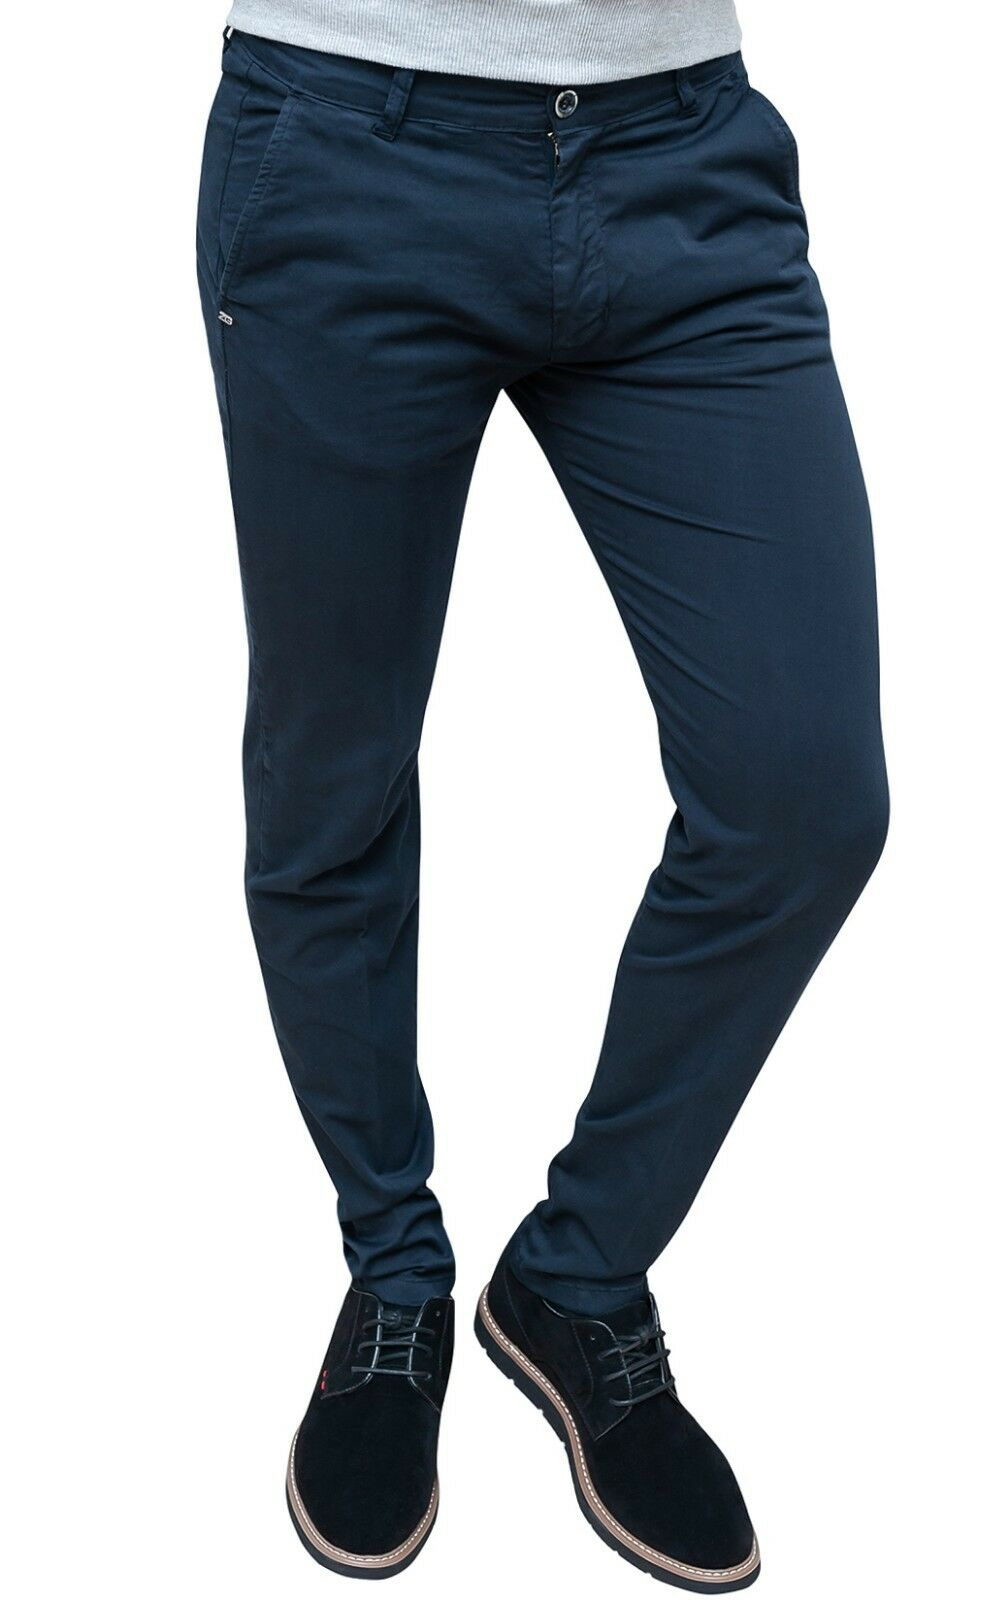 MEN'S TROUSERS TAILORING DARK blueE SMART CASUAL COTTON 100% MADE IN ITALY